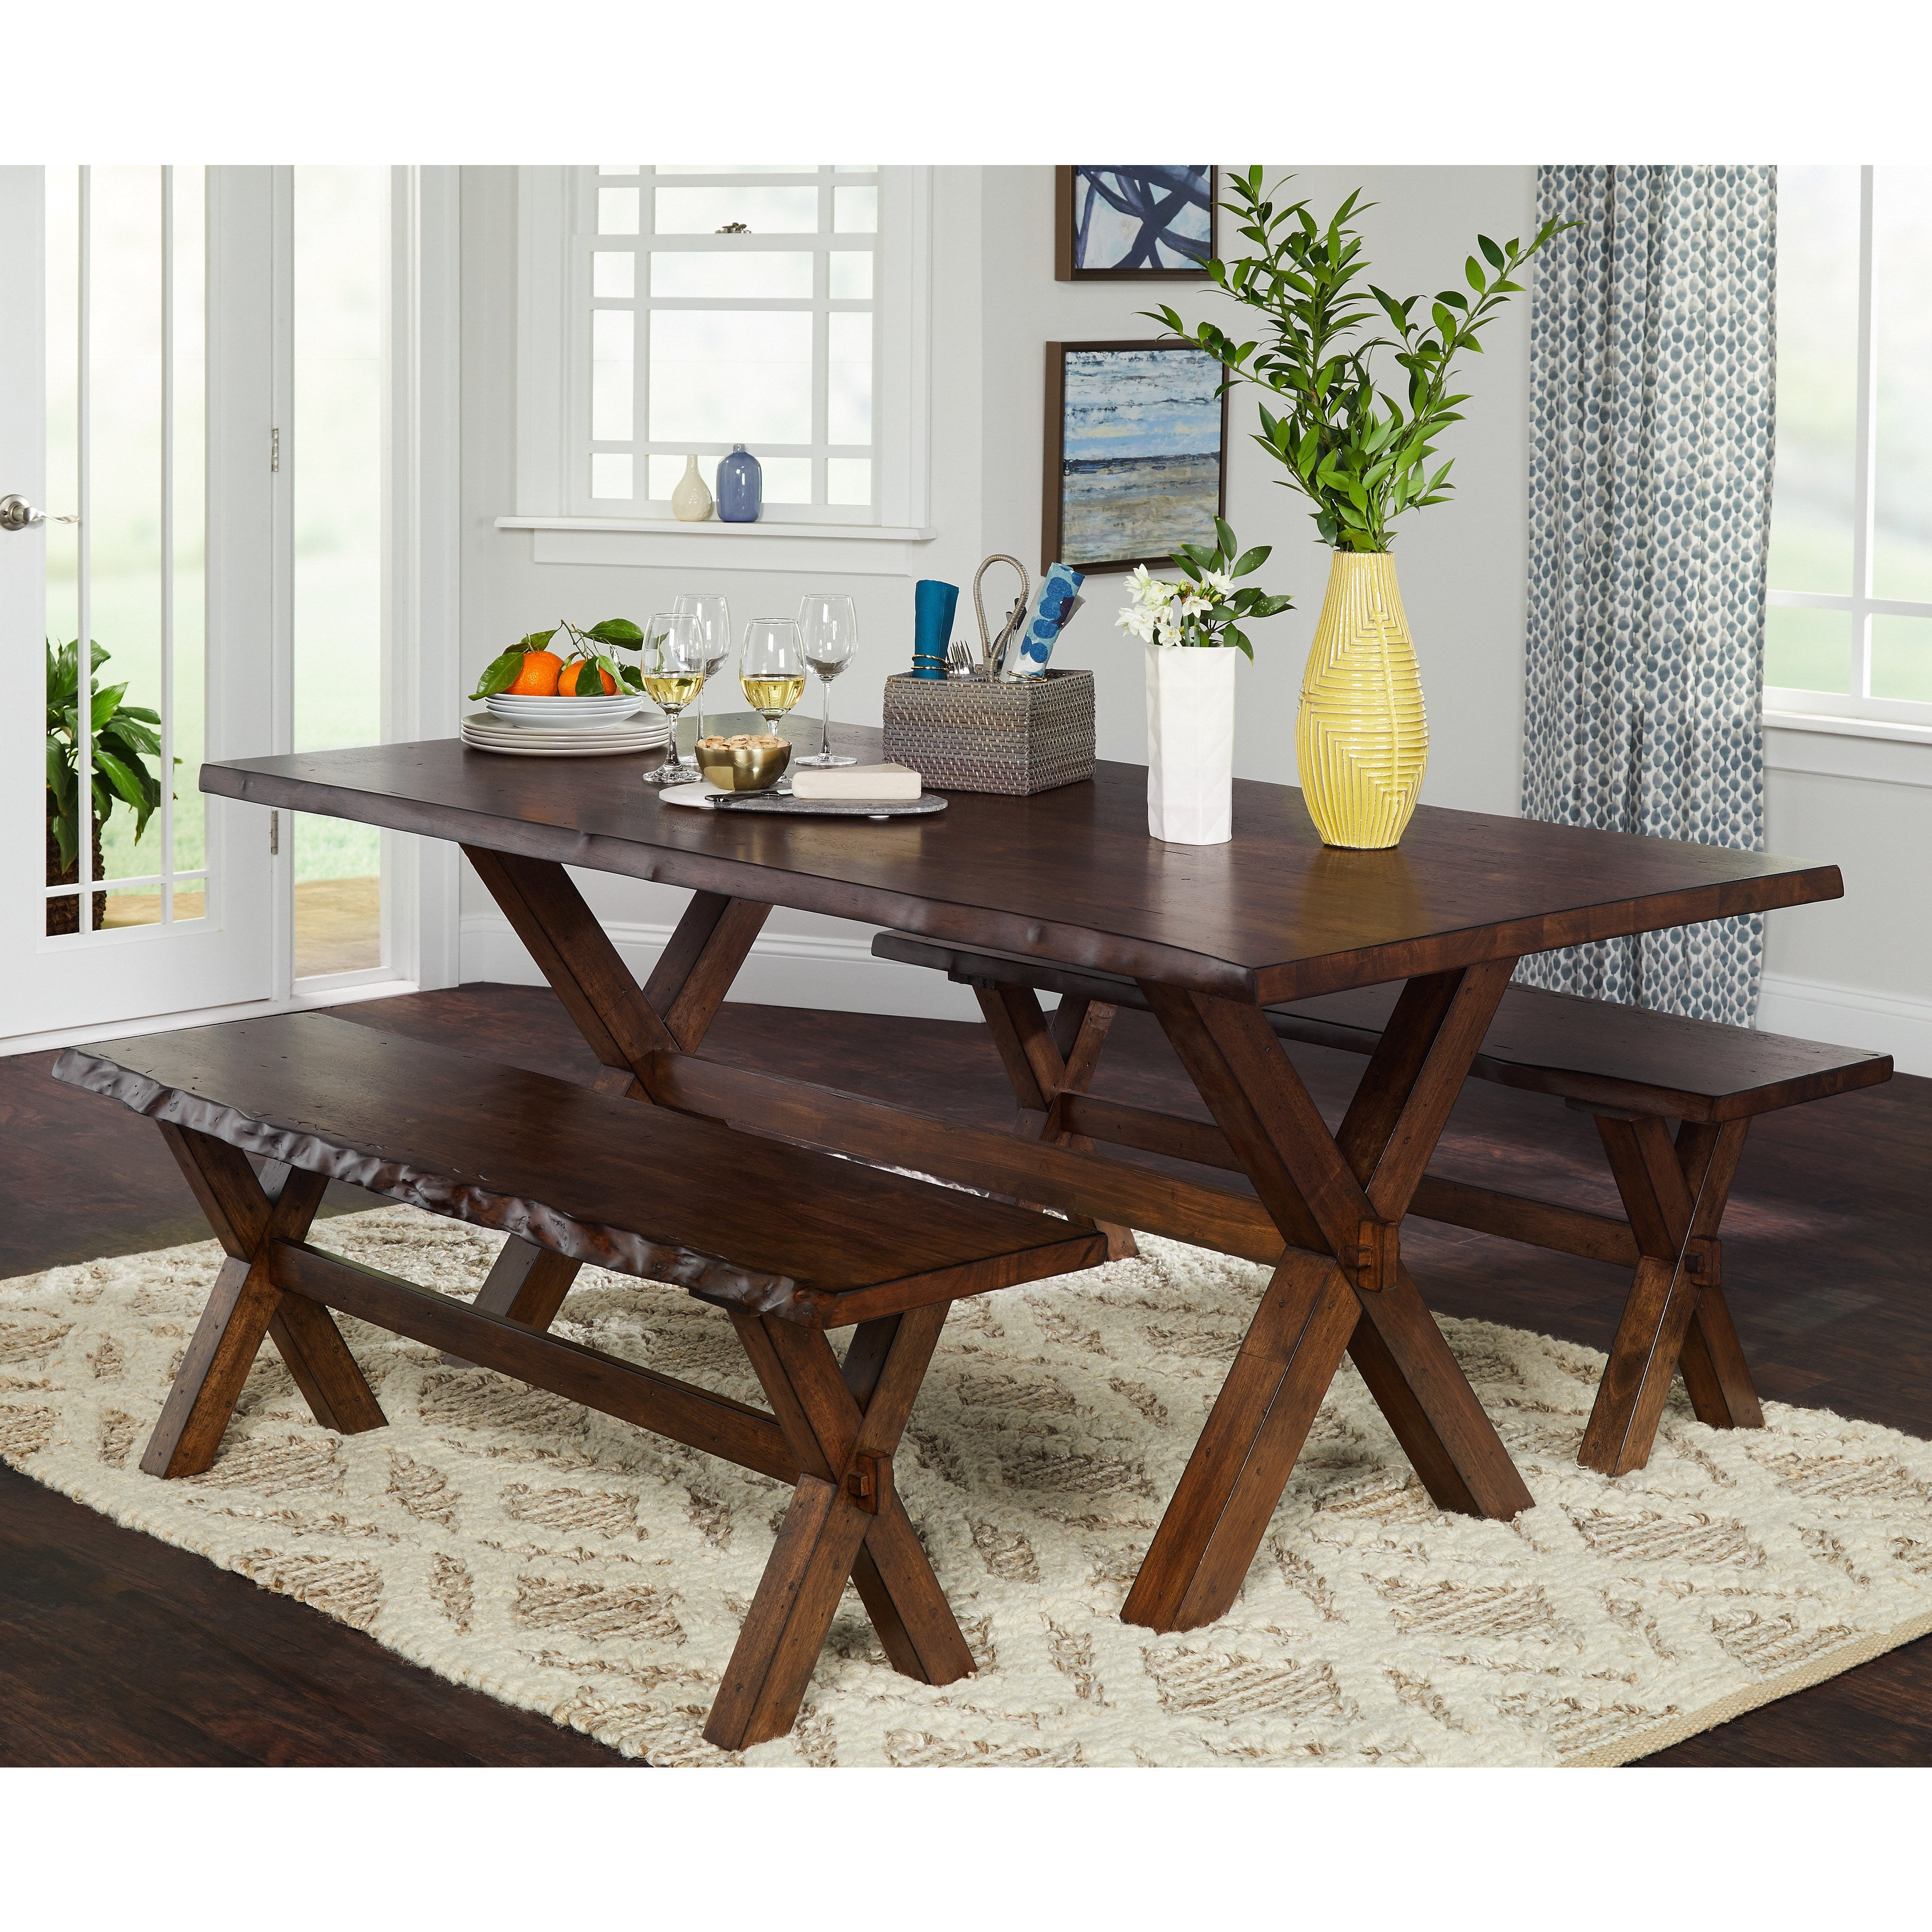 Our Throughout Best And Newest Falmer 3 Piece Solid Wood Dining Sets (View 7 of 25)